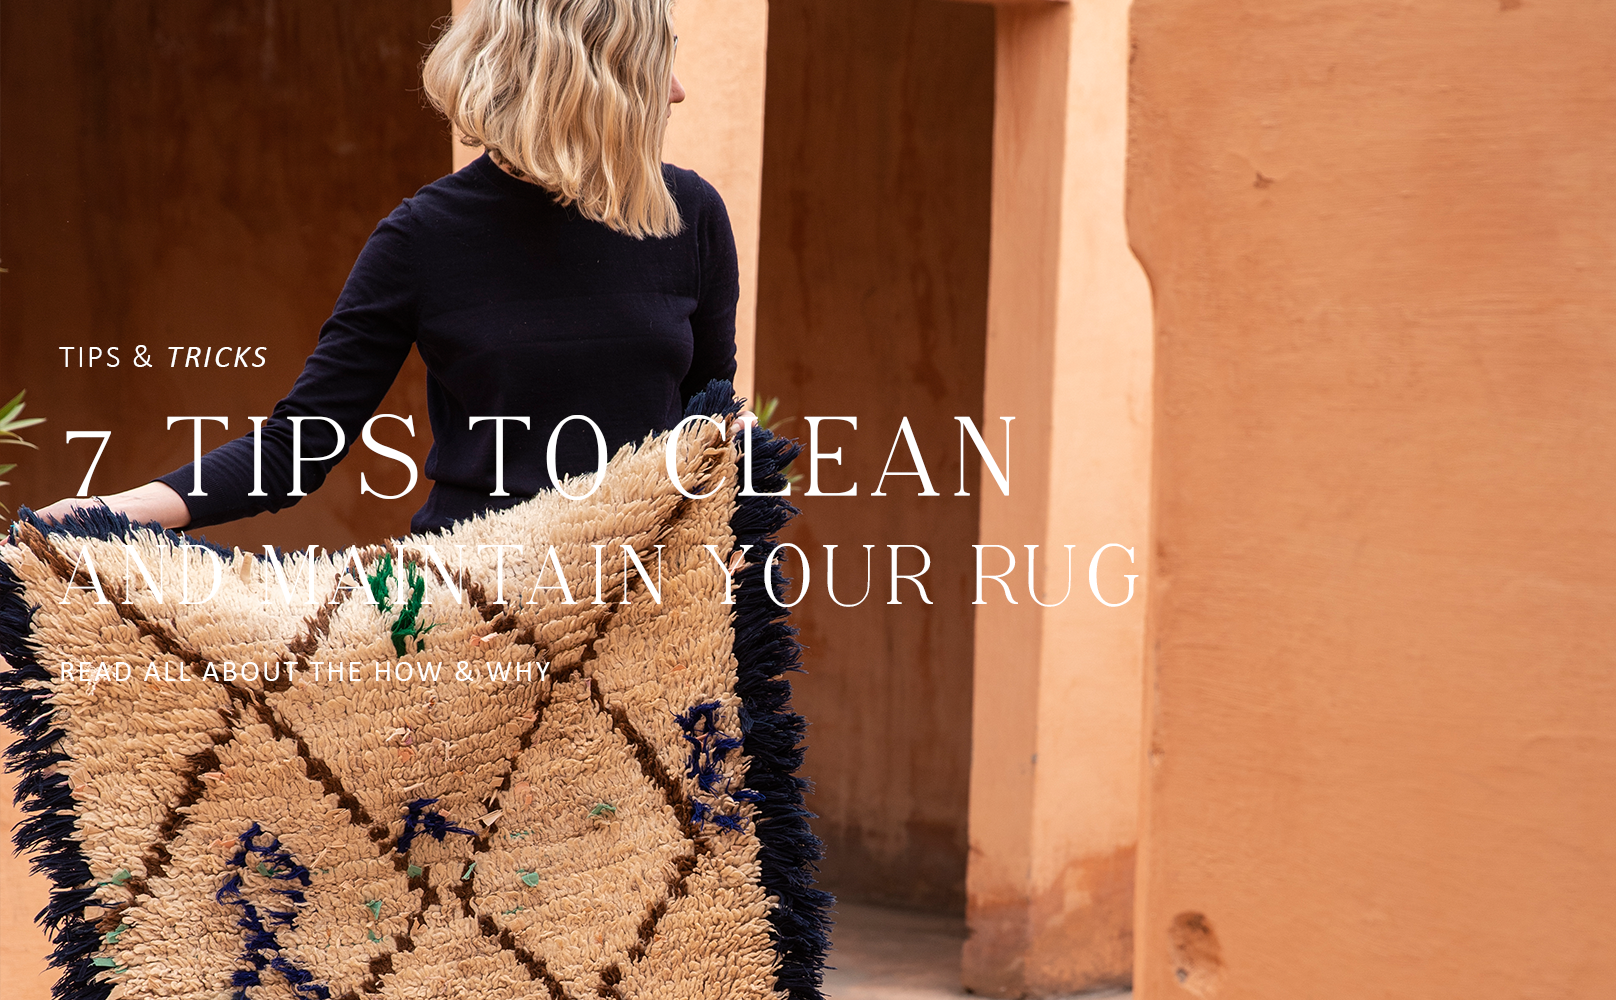 7 tips to clean and maintain your rug